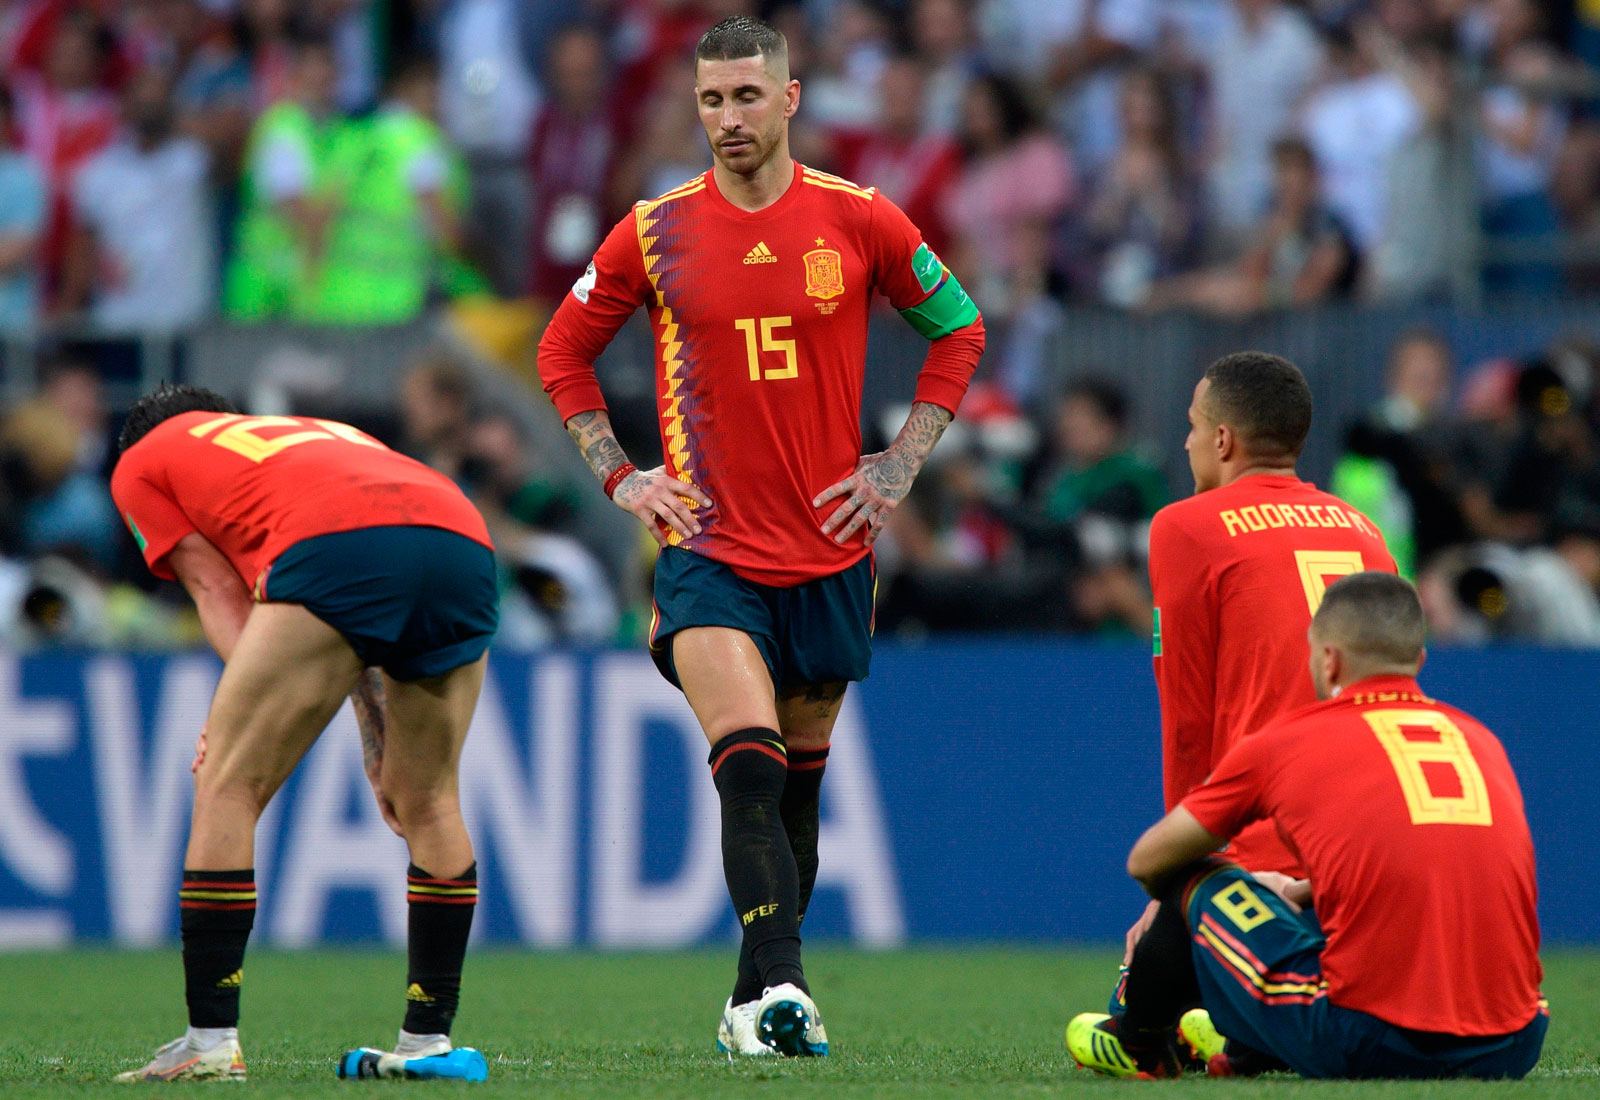 Spain loses to Russia in penalty kicks in the World Cup round of 16